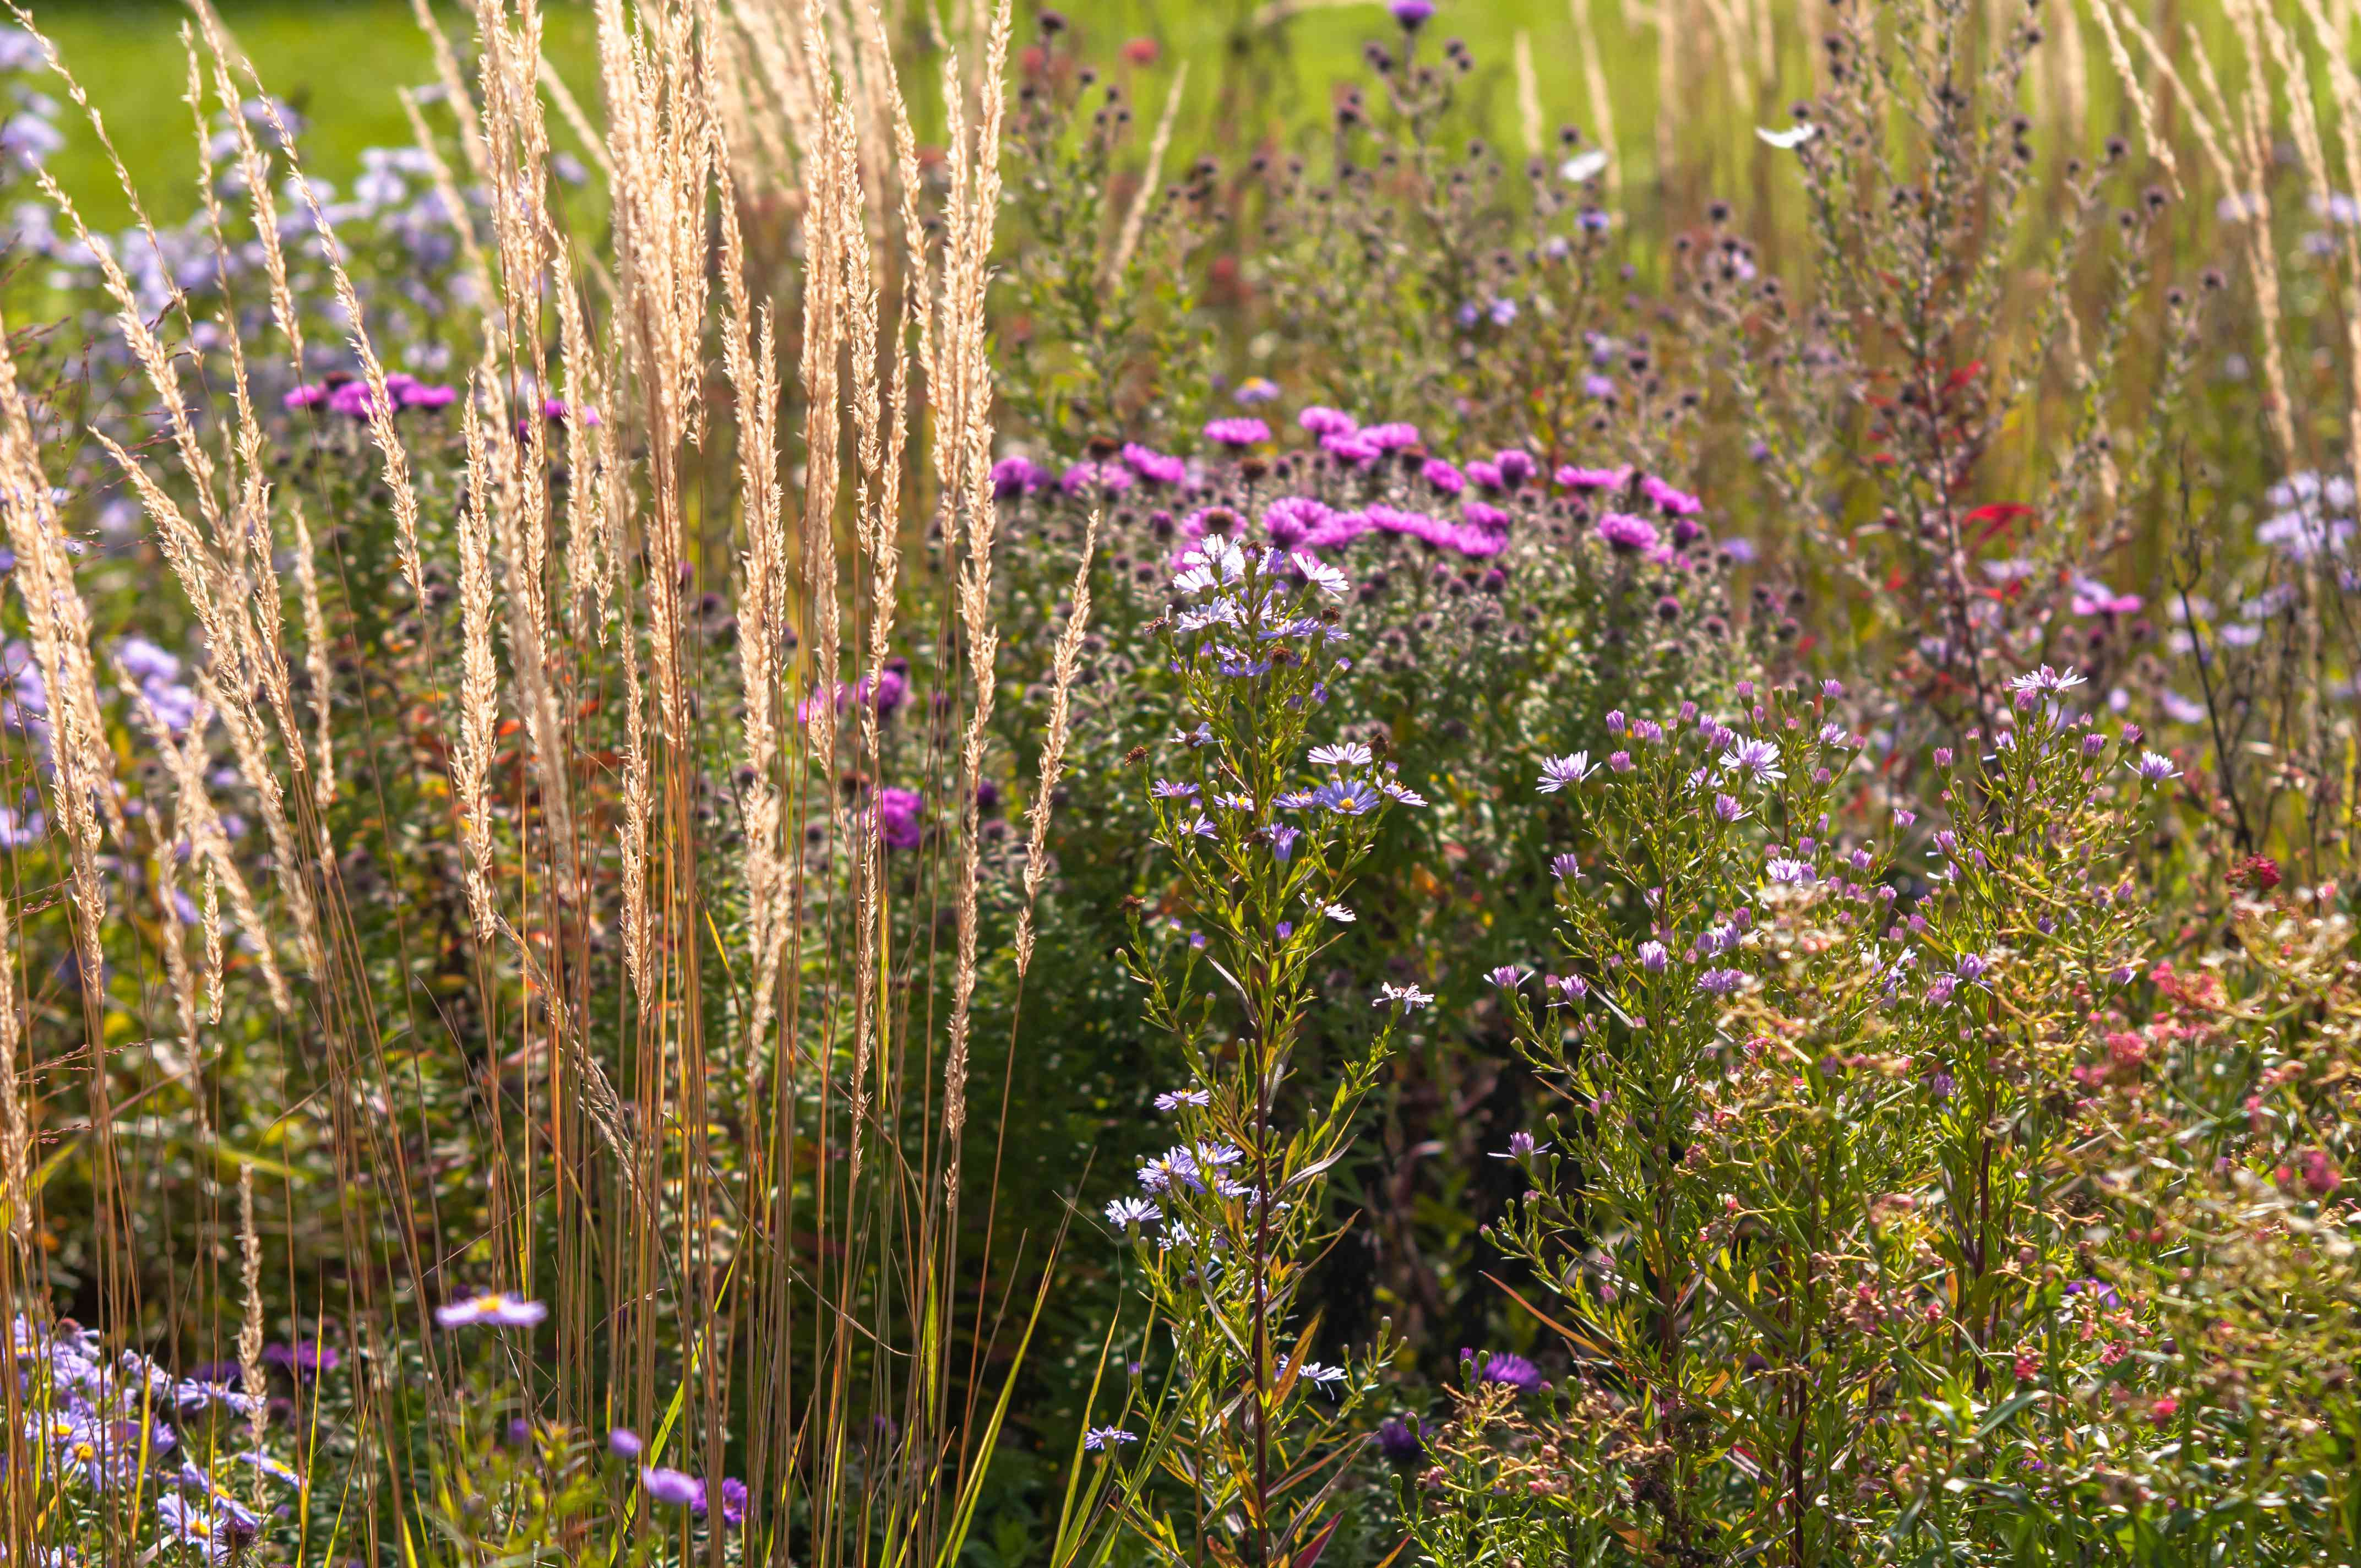 Feather reed grass next to wild flowers